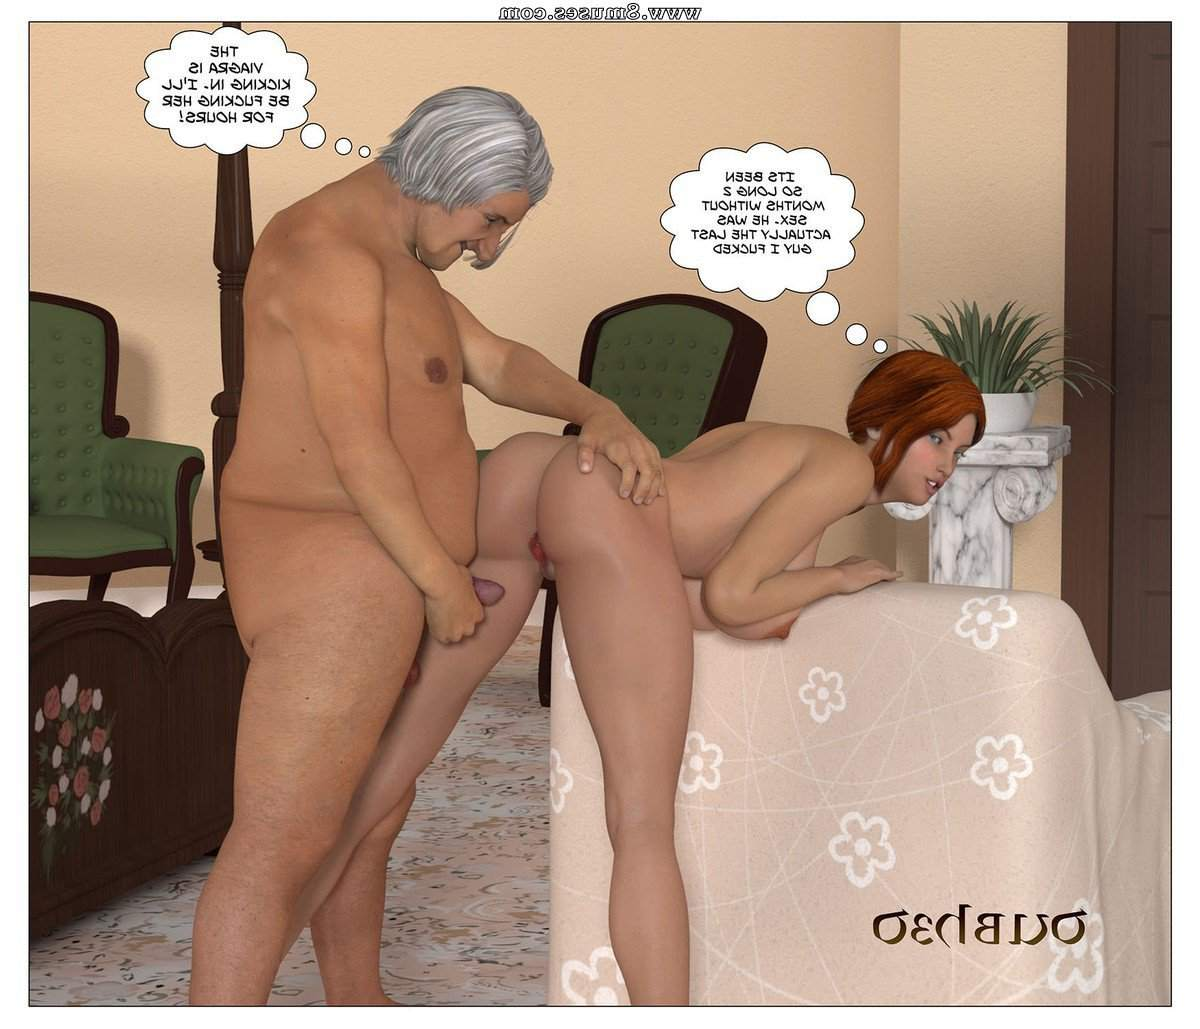 Dubh3d-Dubhgilla-Comics/Dirty-Old-Man Dirty_Old_Man__8muses_-_Sex_and_Porn_Comics_7.jpg